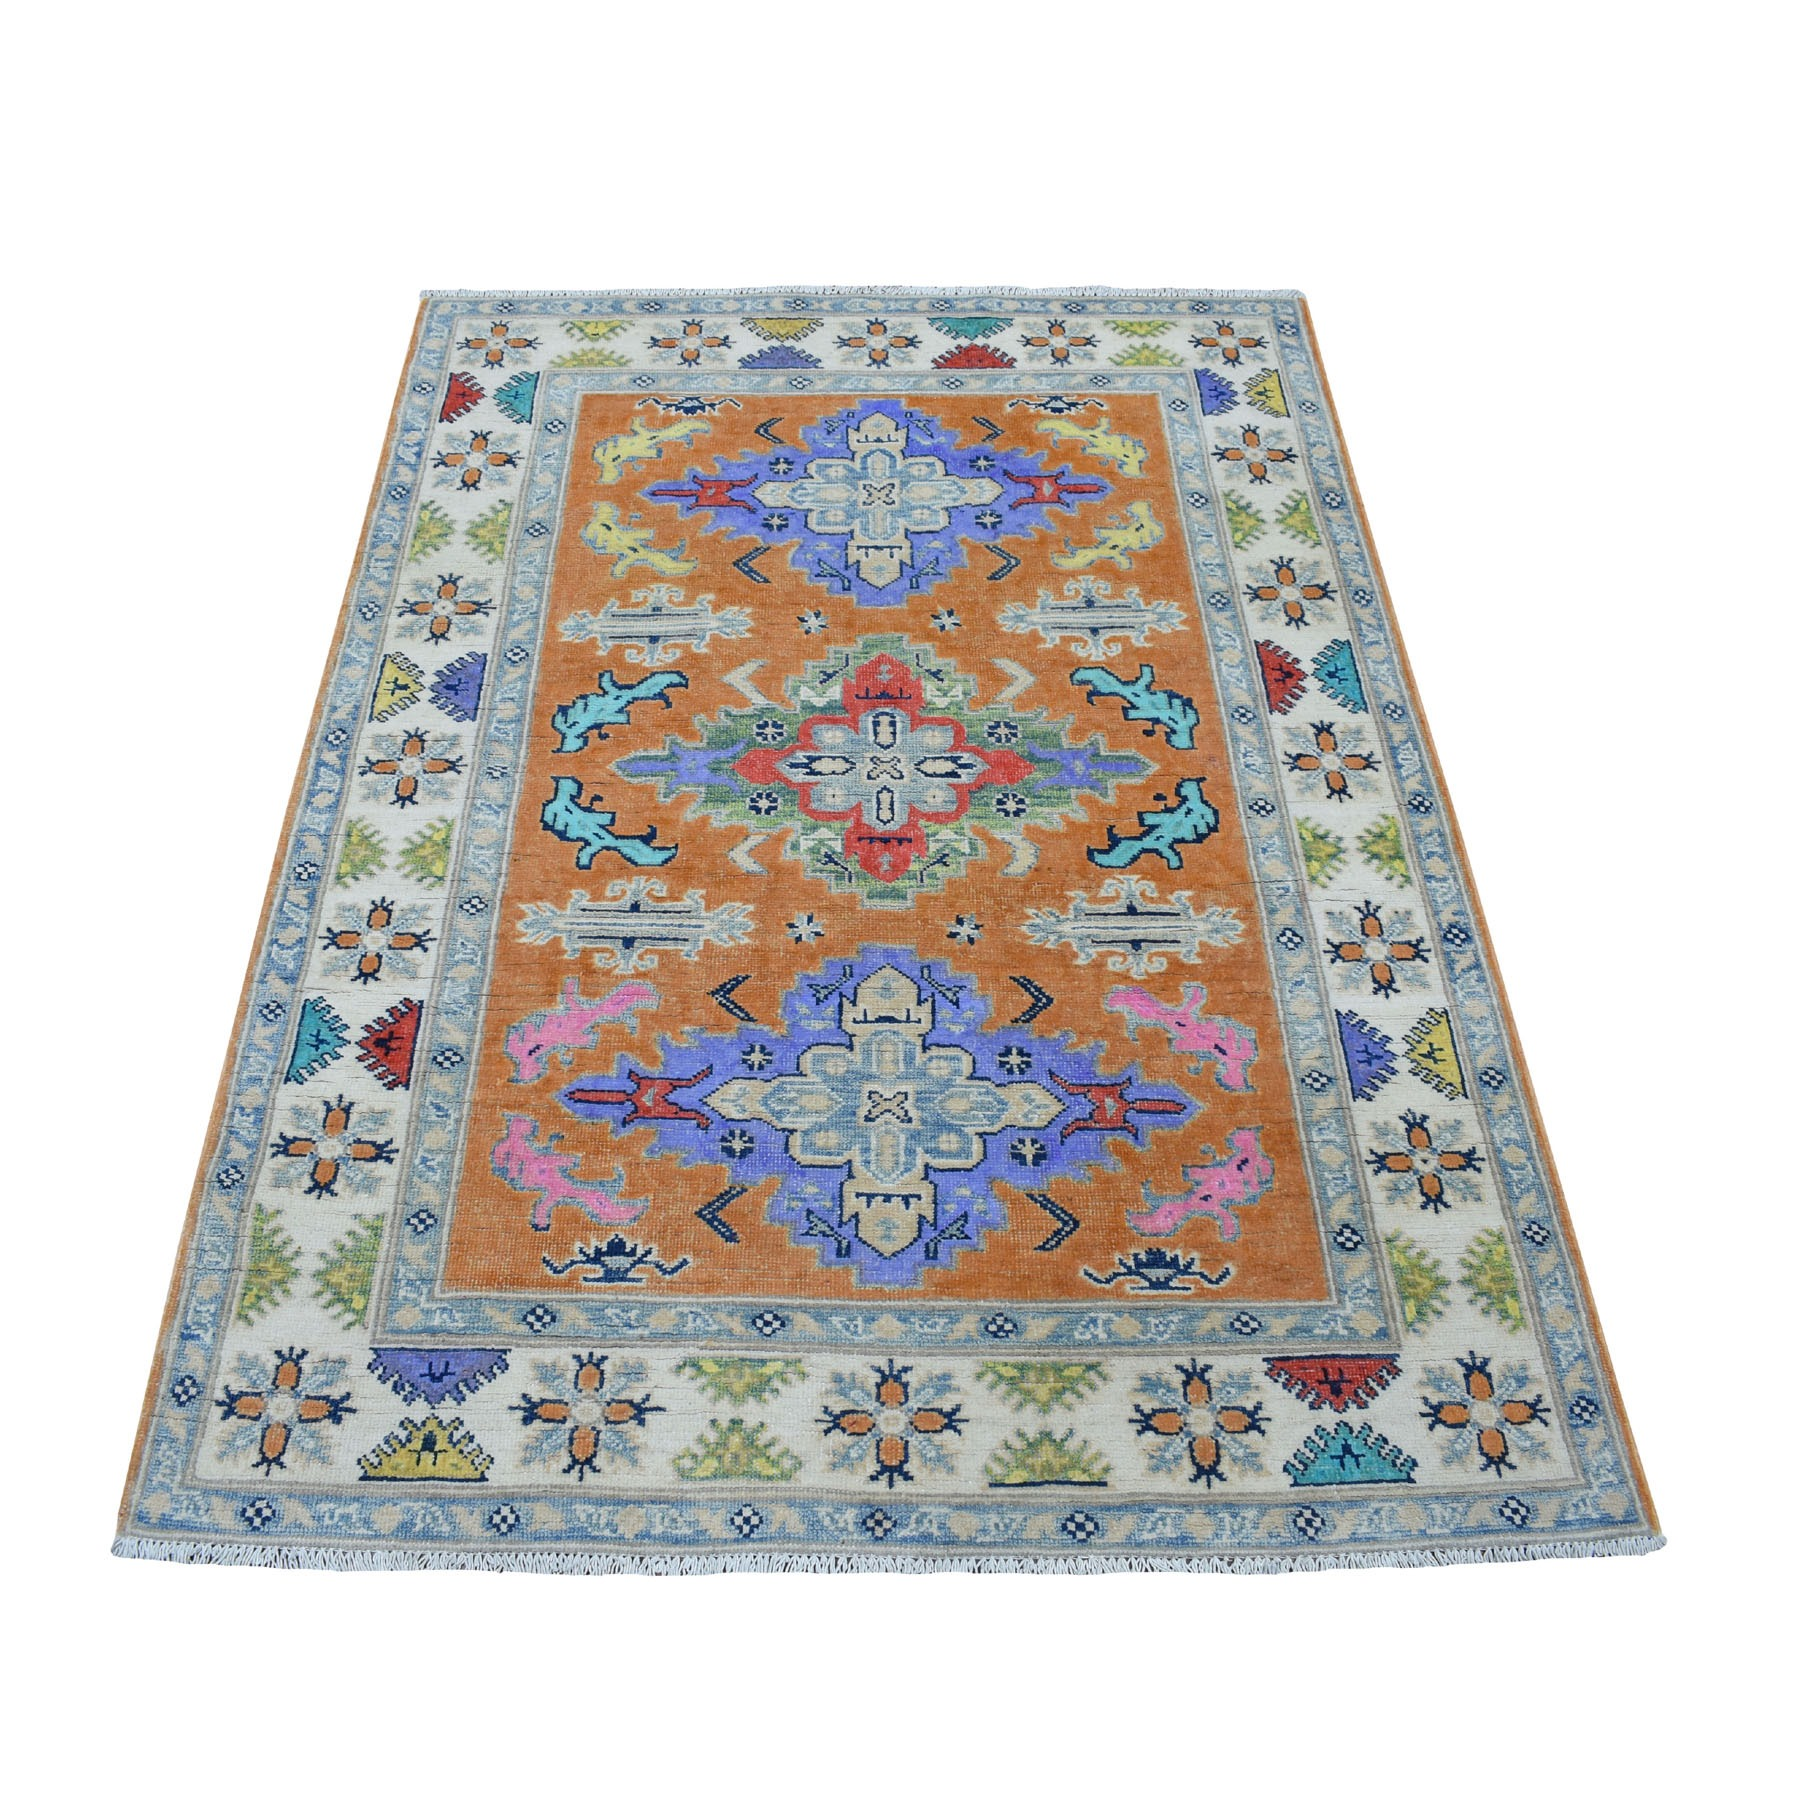 "4'X5'4"" Colorful Orangefusion Kazak Pure Wool Geometric Design Hand Knotted Oriental Rug moaec997"